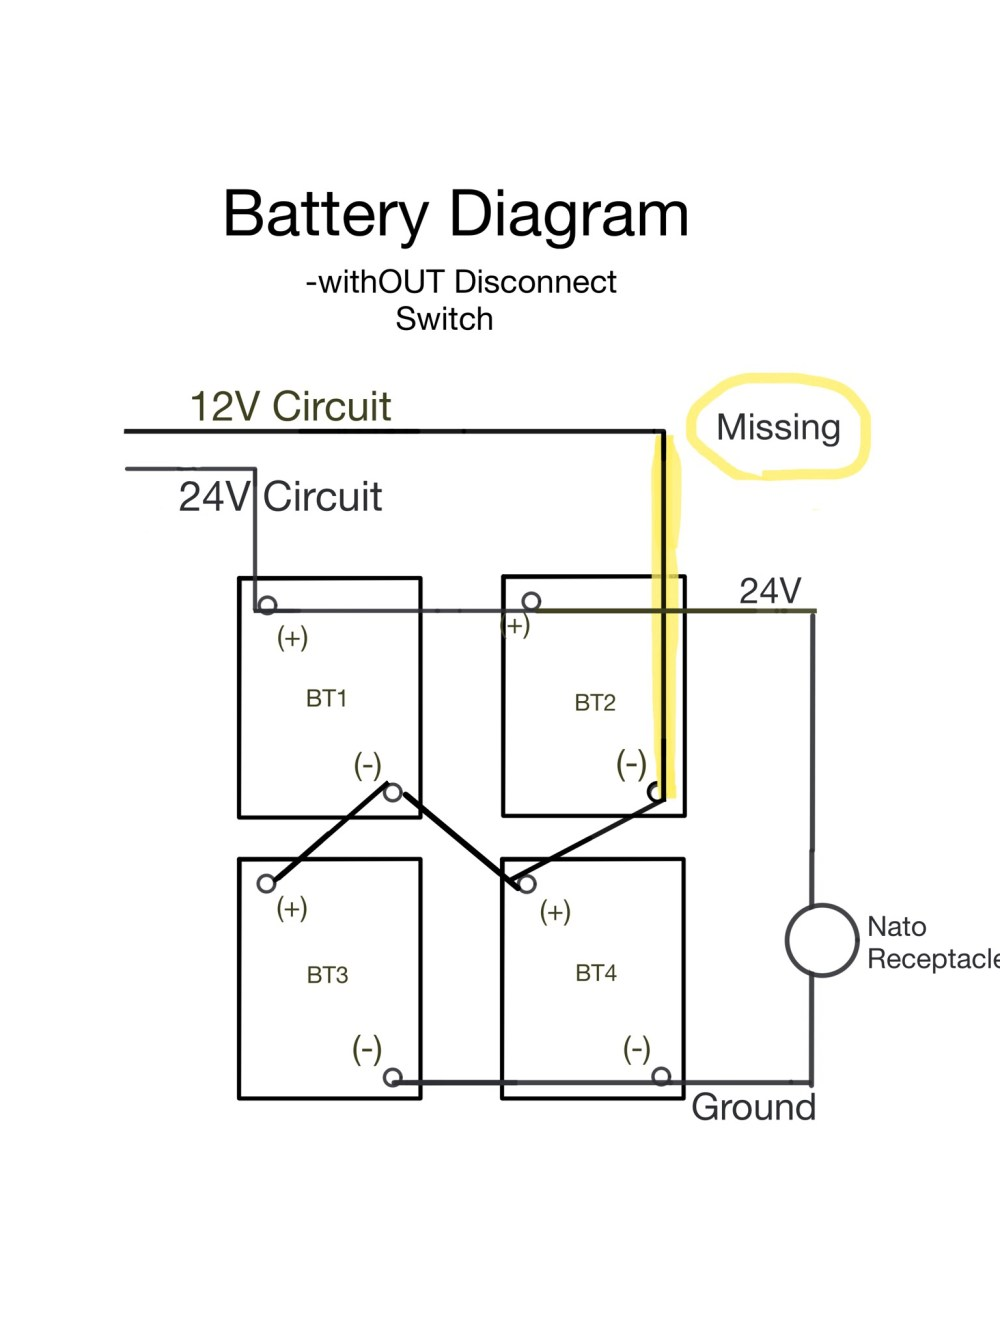 medium resolution of i did a revised battery diagram to illustrate what we missed on my oem diagram https uploads tapatalk cdn com 201 1e23590e62 jpg